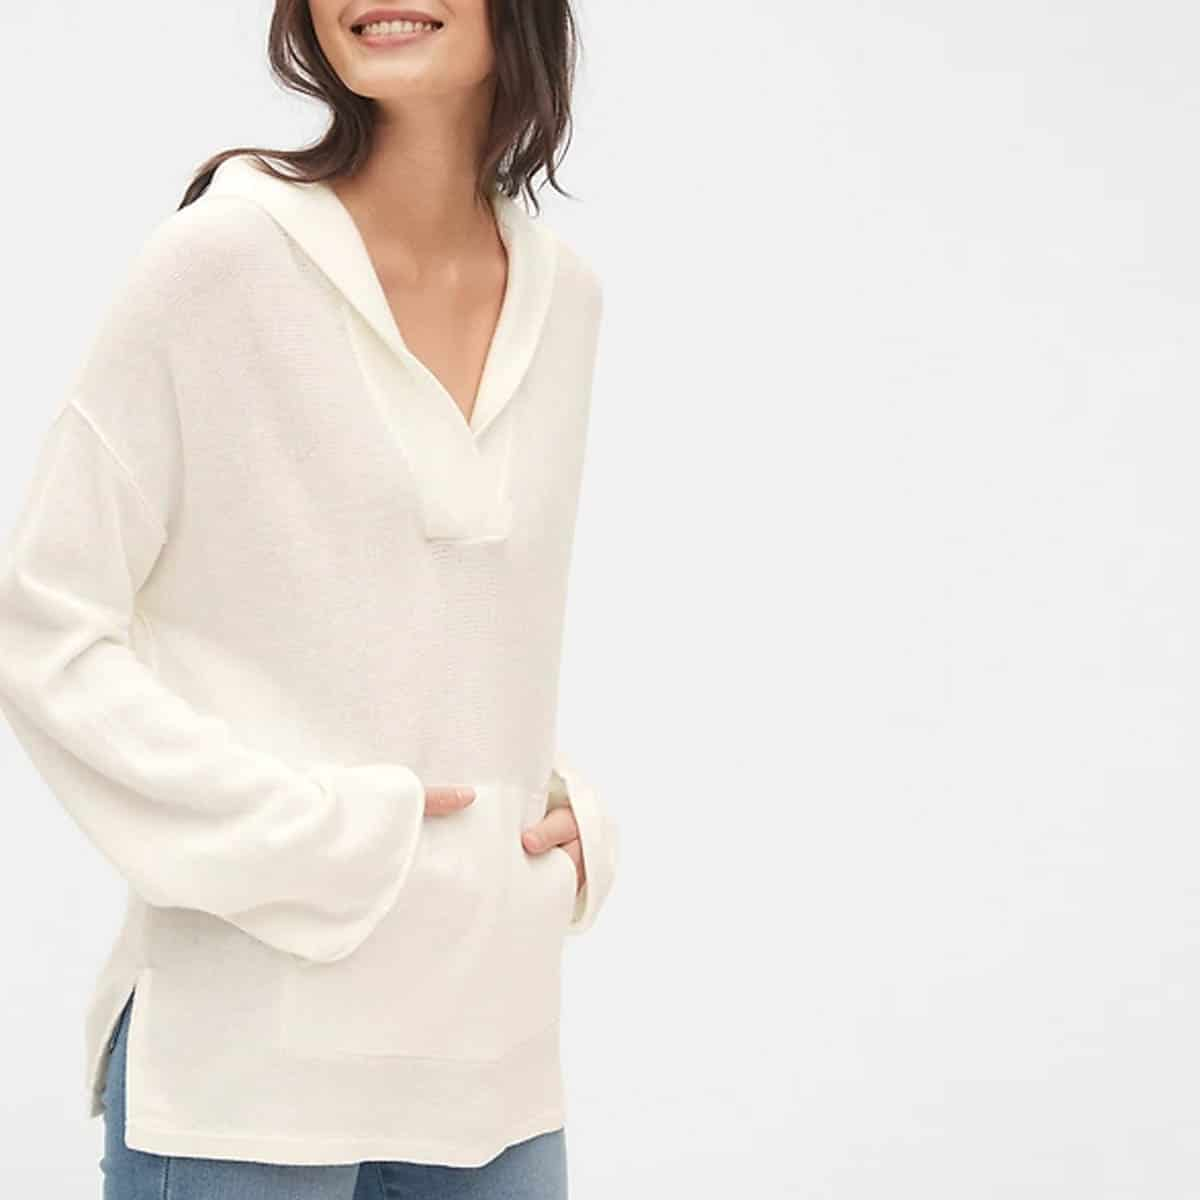 10 Stylish and Comfy Summer Clothes I'm Adding to My Wardrobe Right Now 10